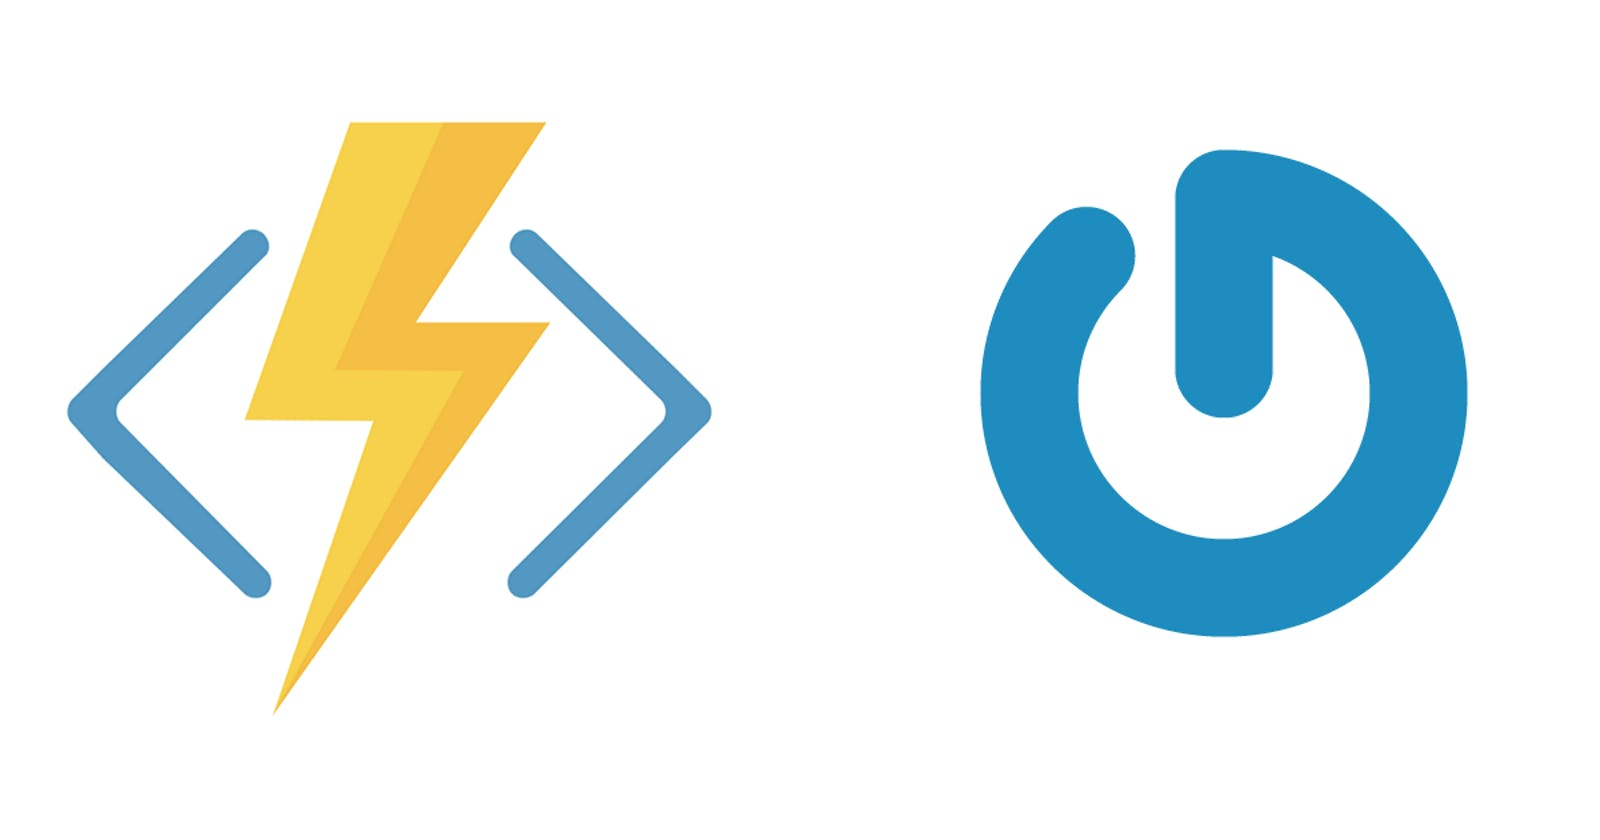 Getting a user's Gravatar data using Azure Functions